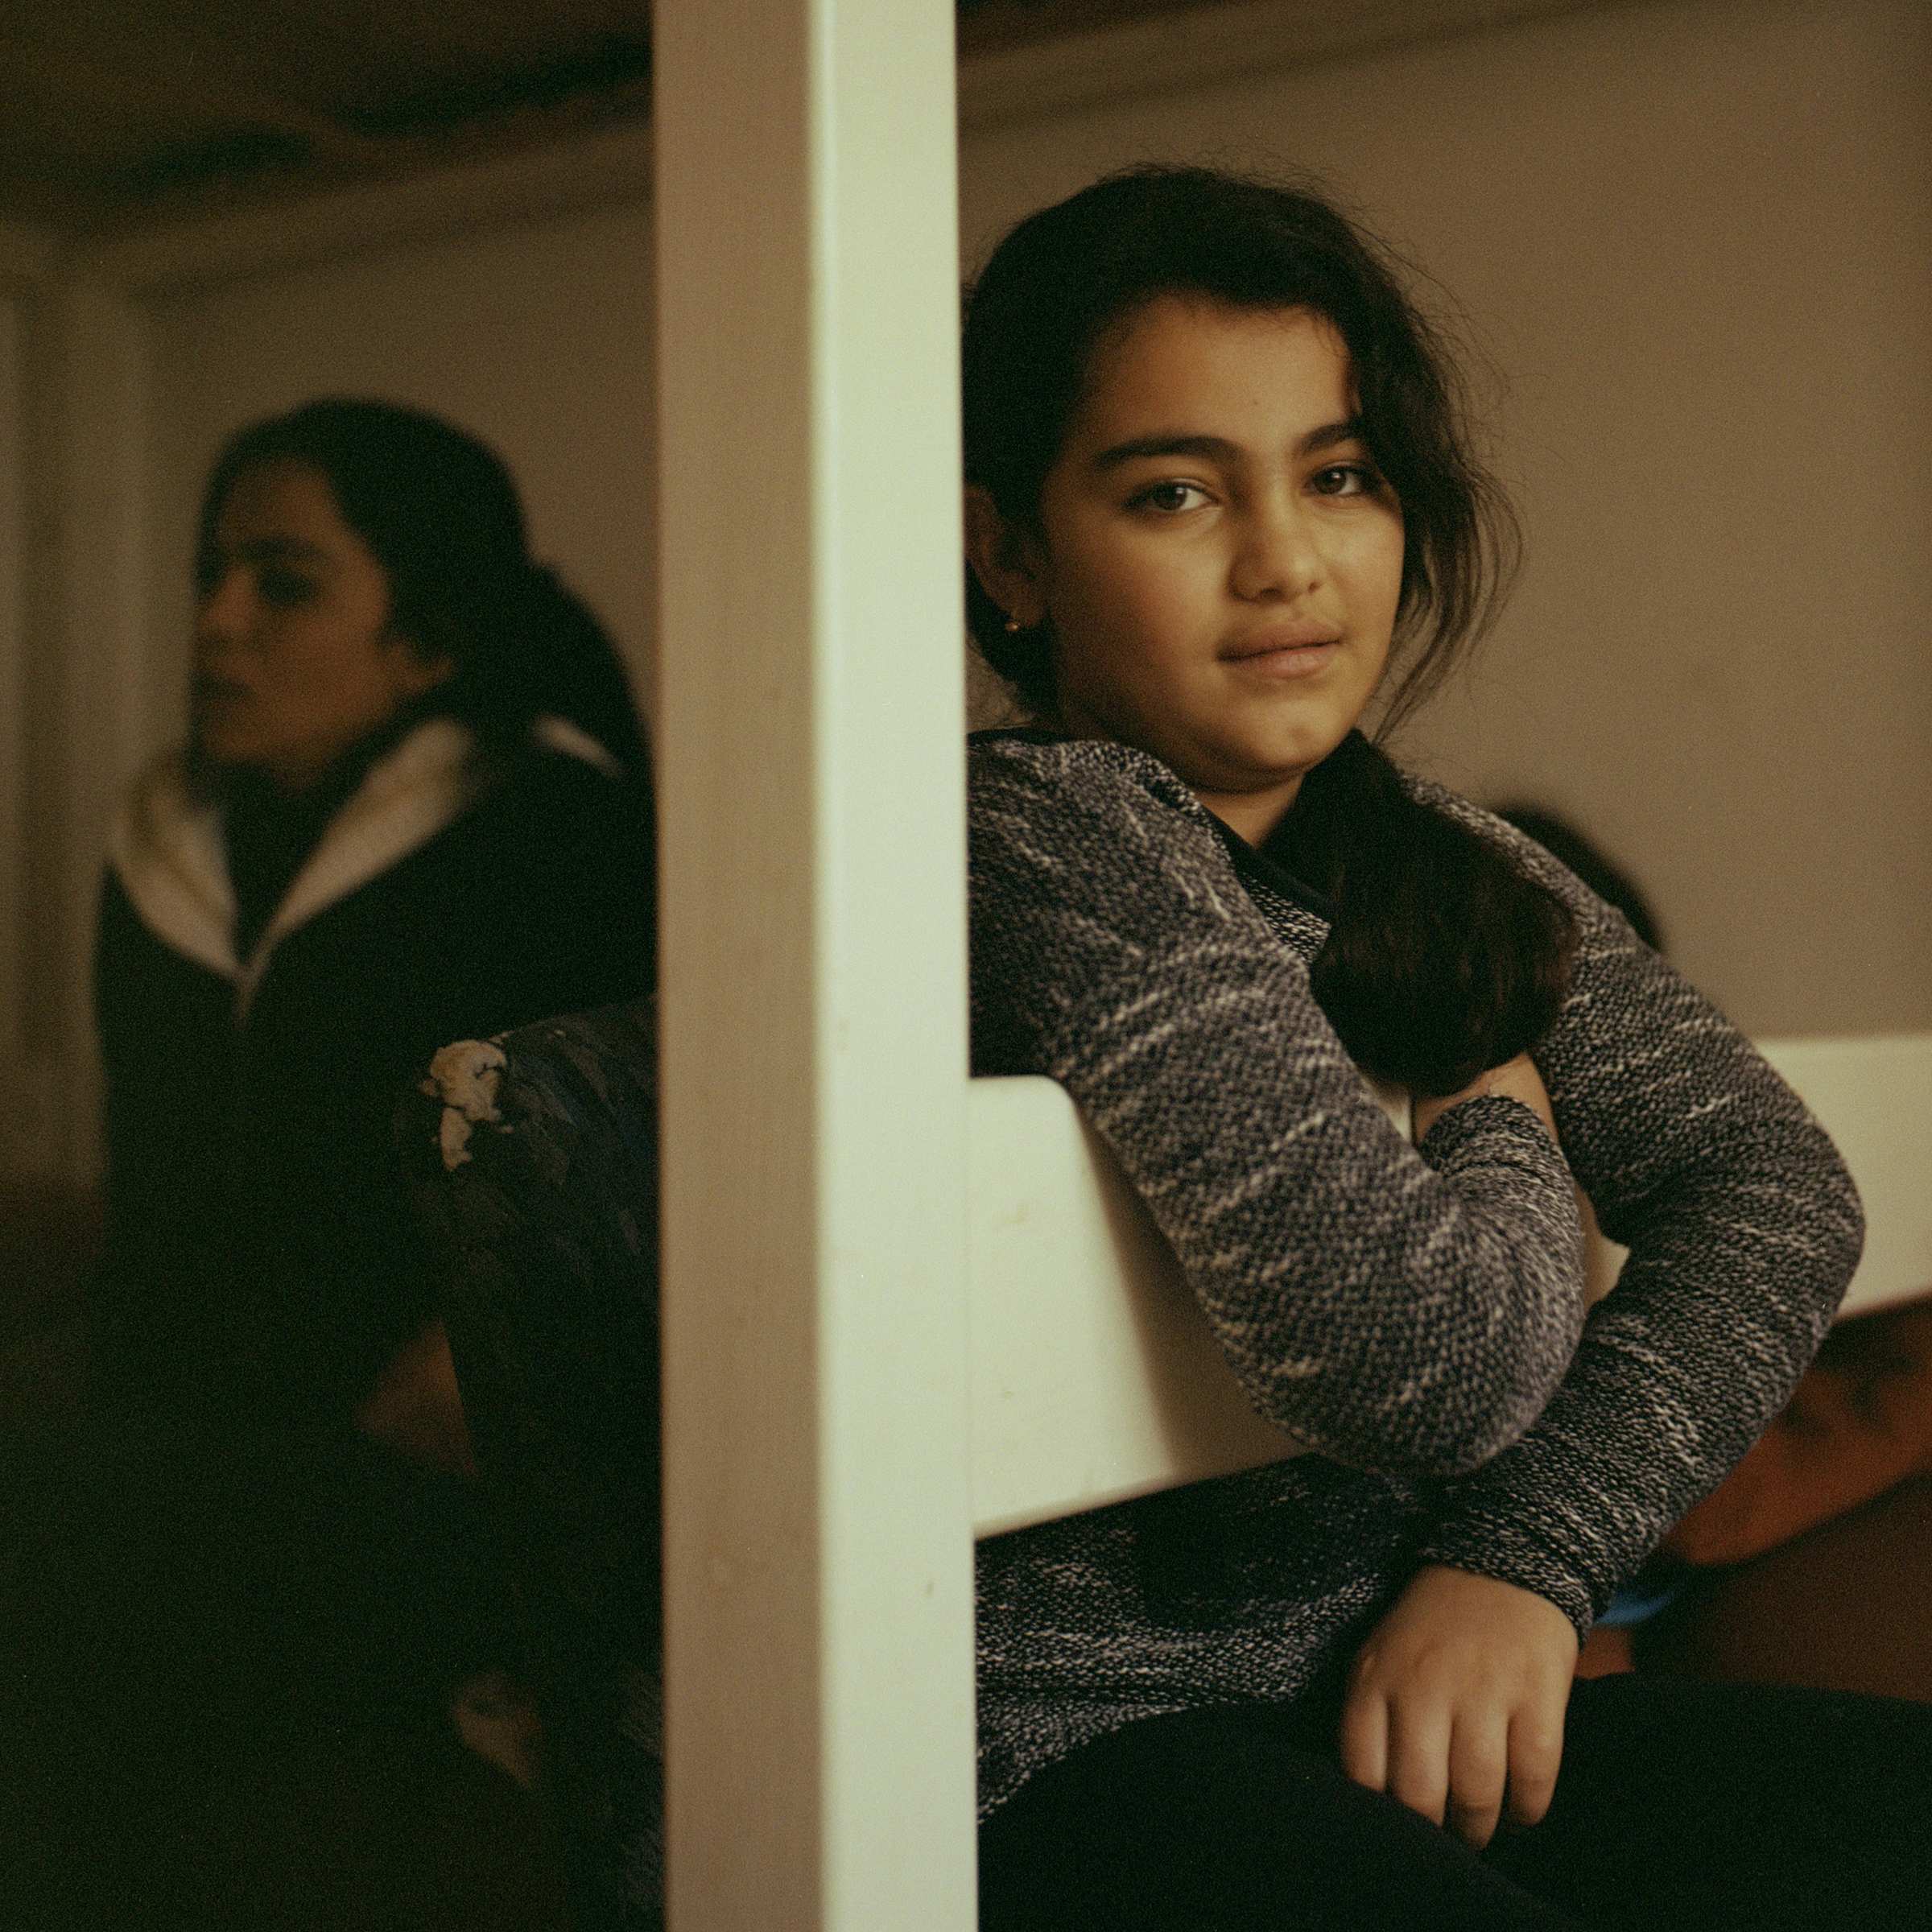 Berivan, Hanan's 10-year-old daughter, at home.